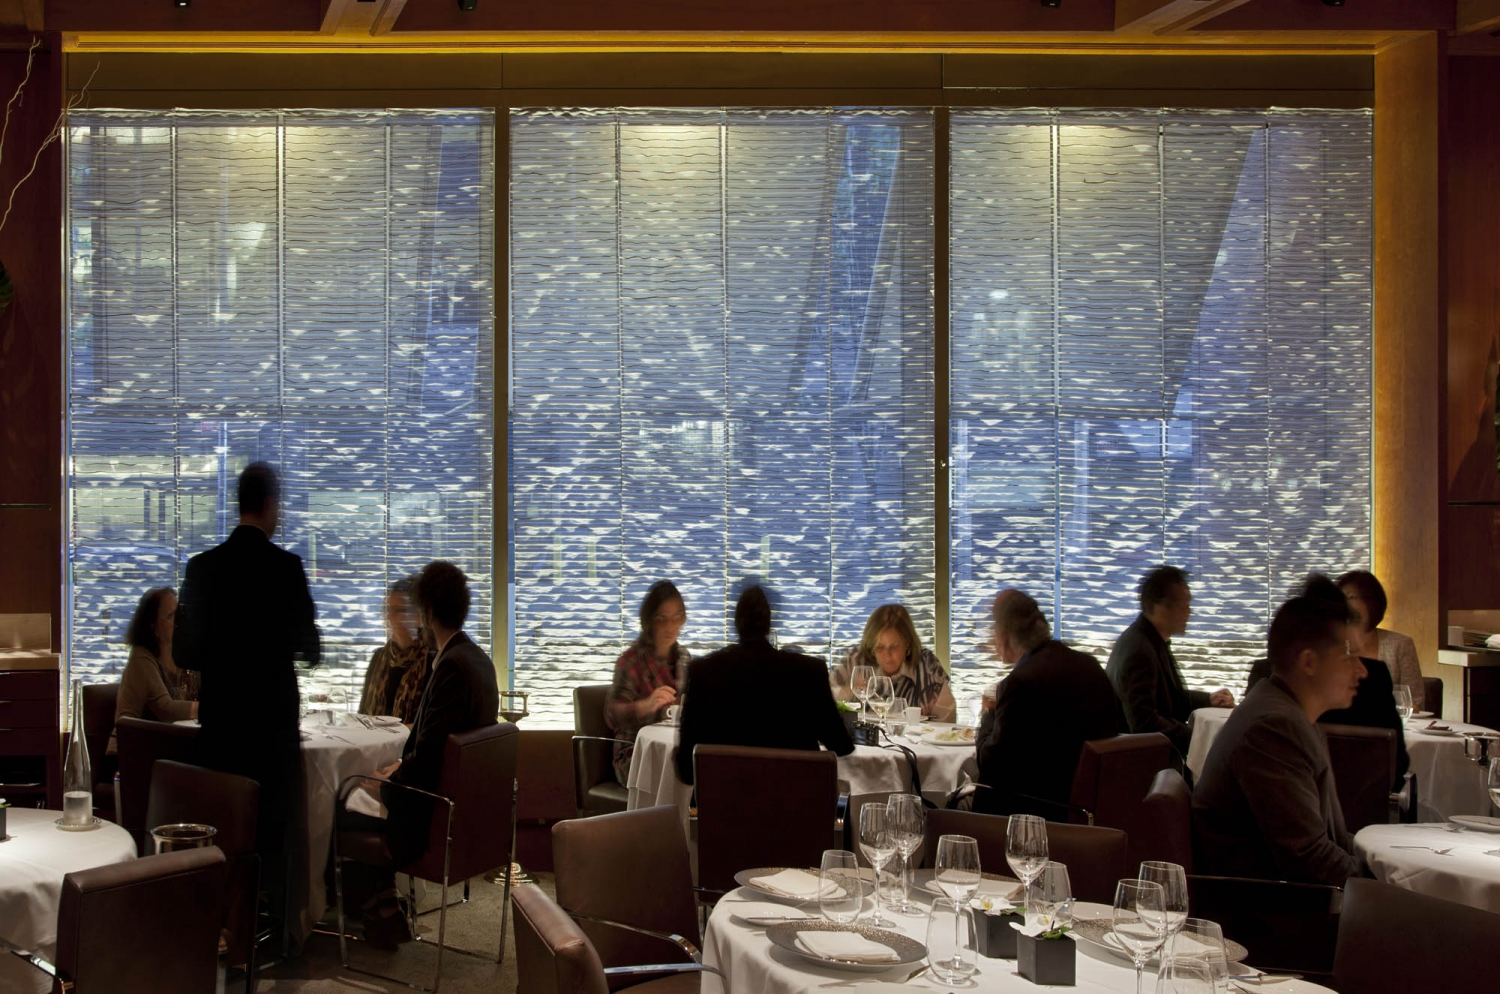 What Is Mother Of Pearl >> Le Bernardin | Bentel & Bentel Architects/Planners A.I.A.